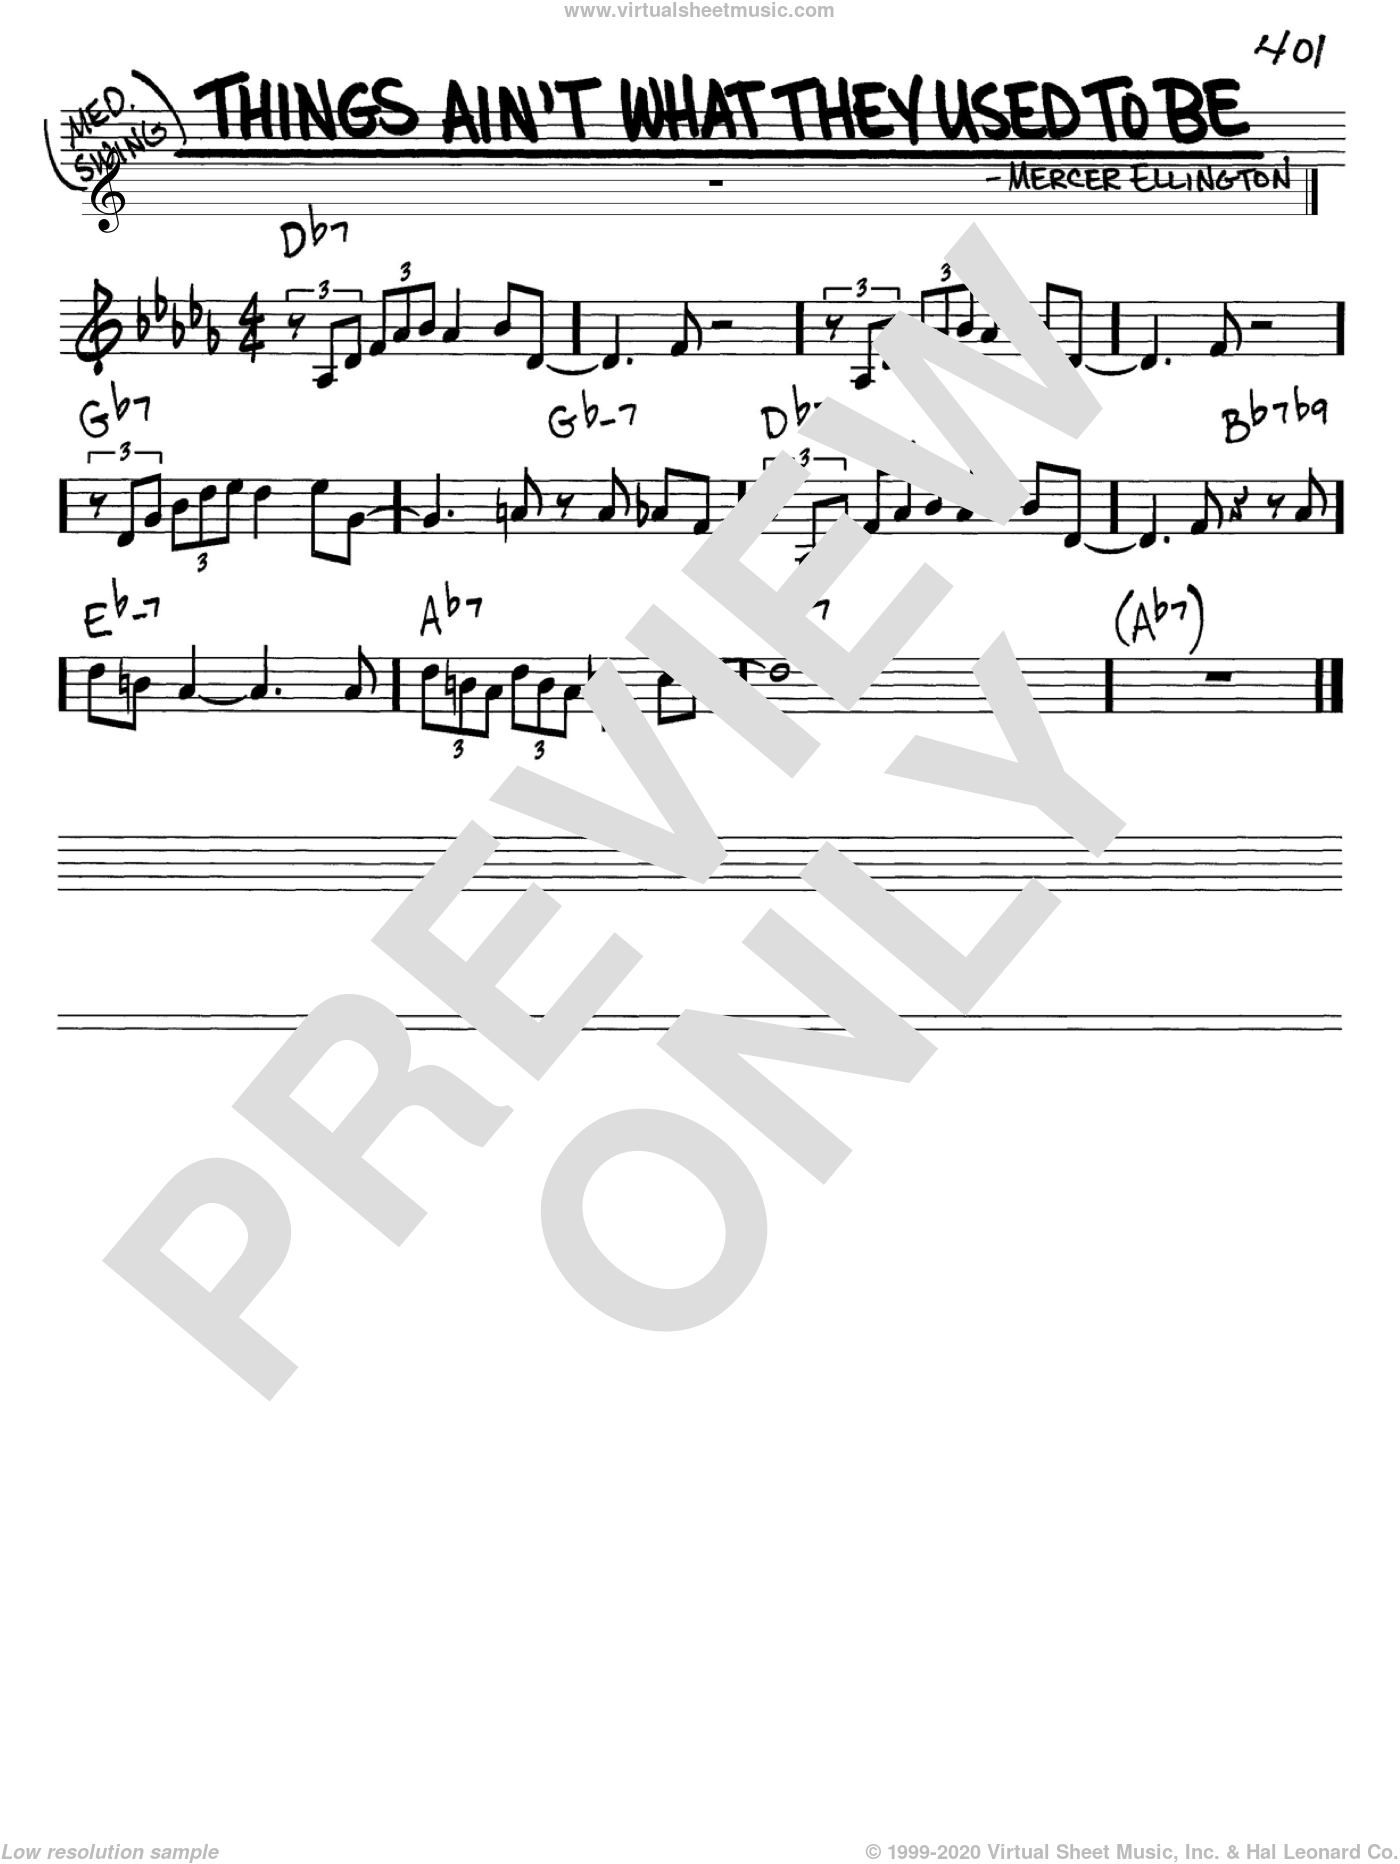 Things Ain't What They Used To Be sheet music for voice and other instruments (C) by Mercer Ellington. Score Image Preview.